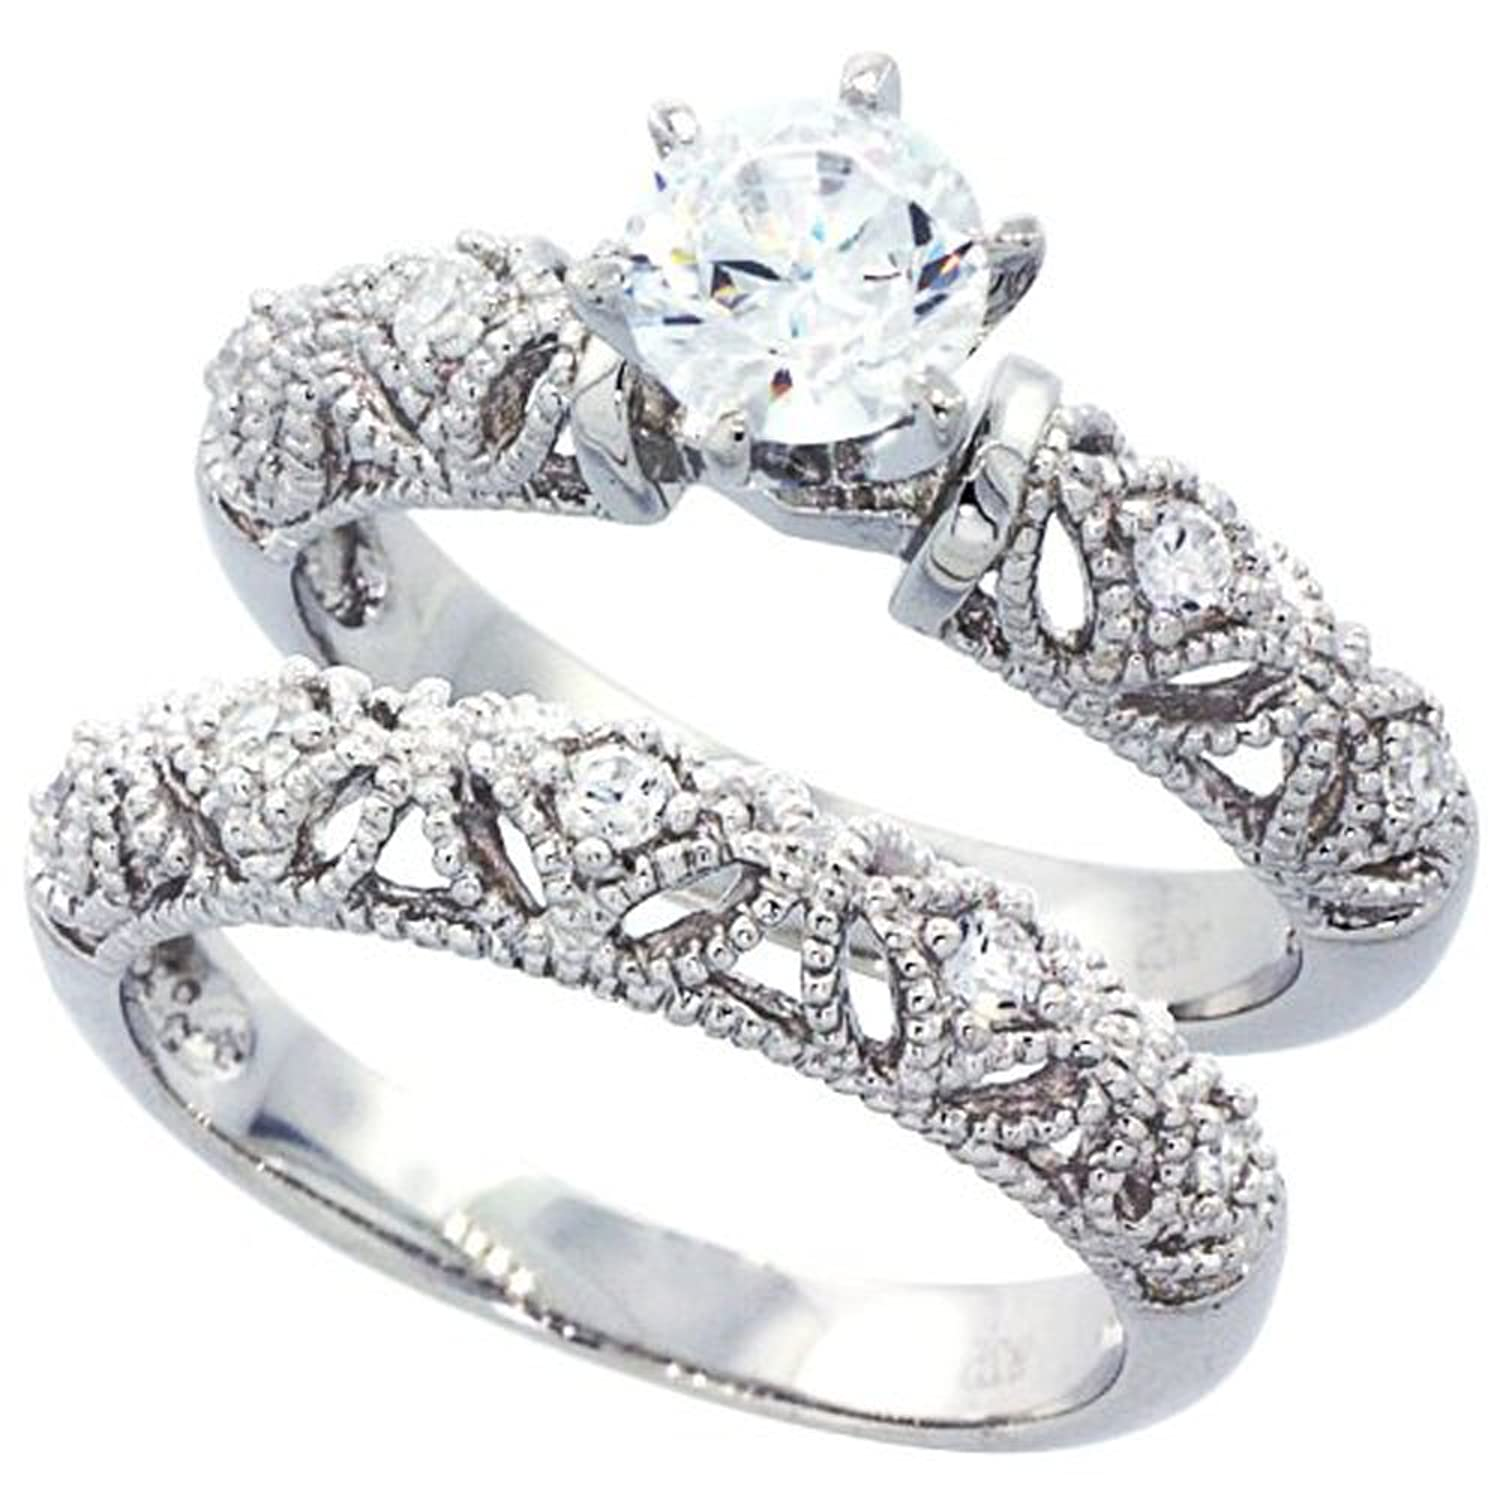 amazoncom sterling silver wedding ring set round cz engagement ring 2pcs vintage bridal sets size 5 to 10 jewelry - Women Wedding Ring